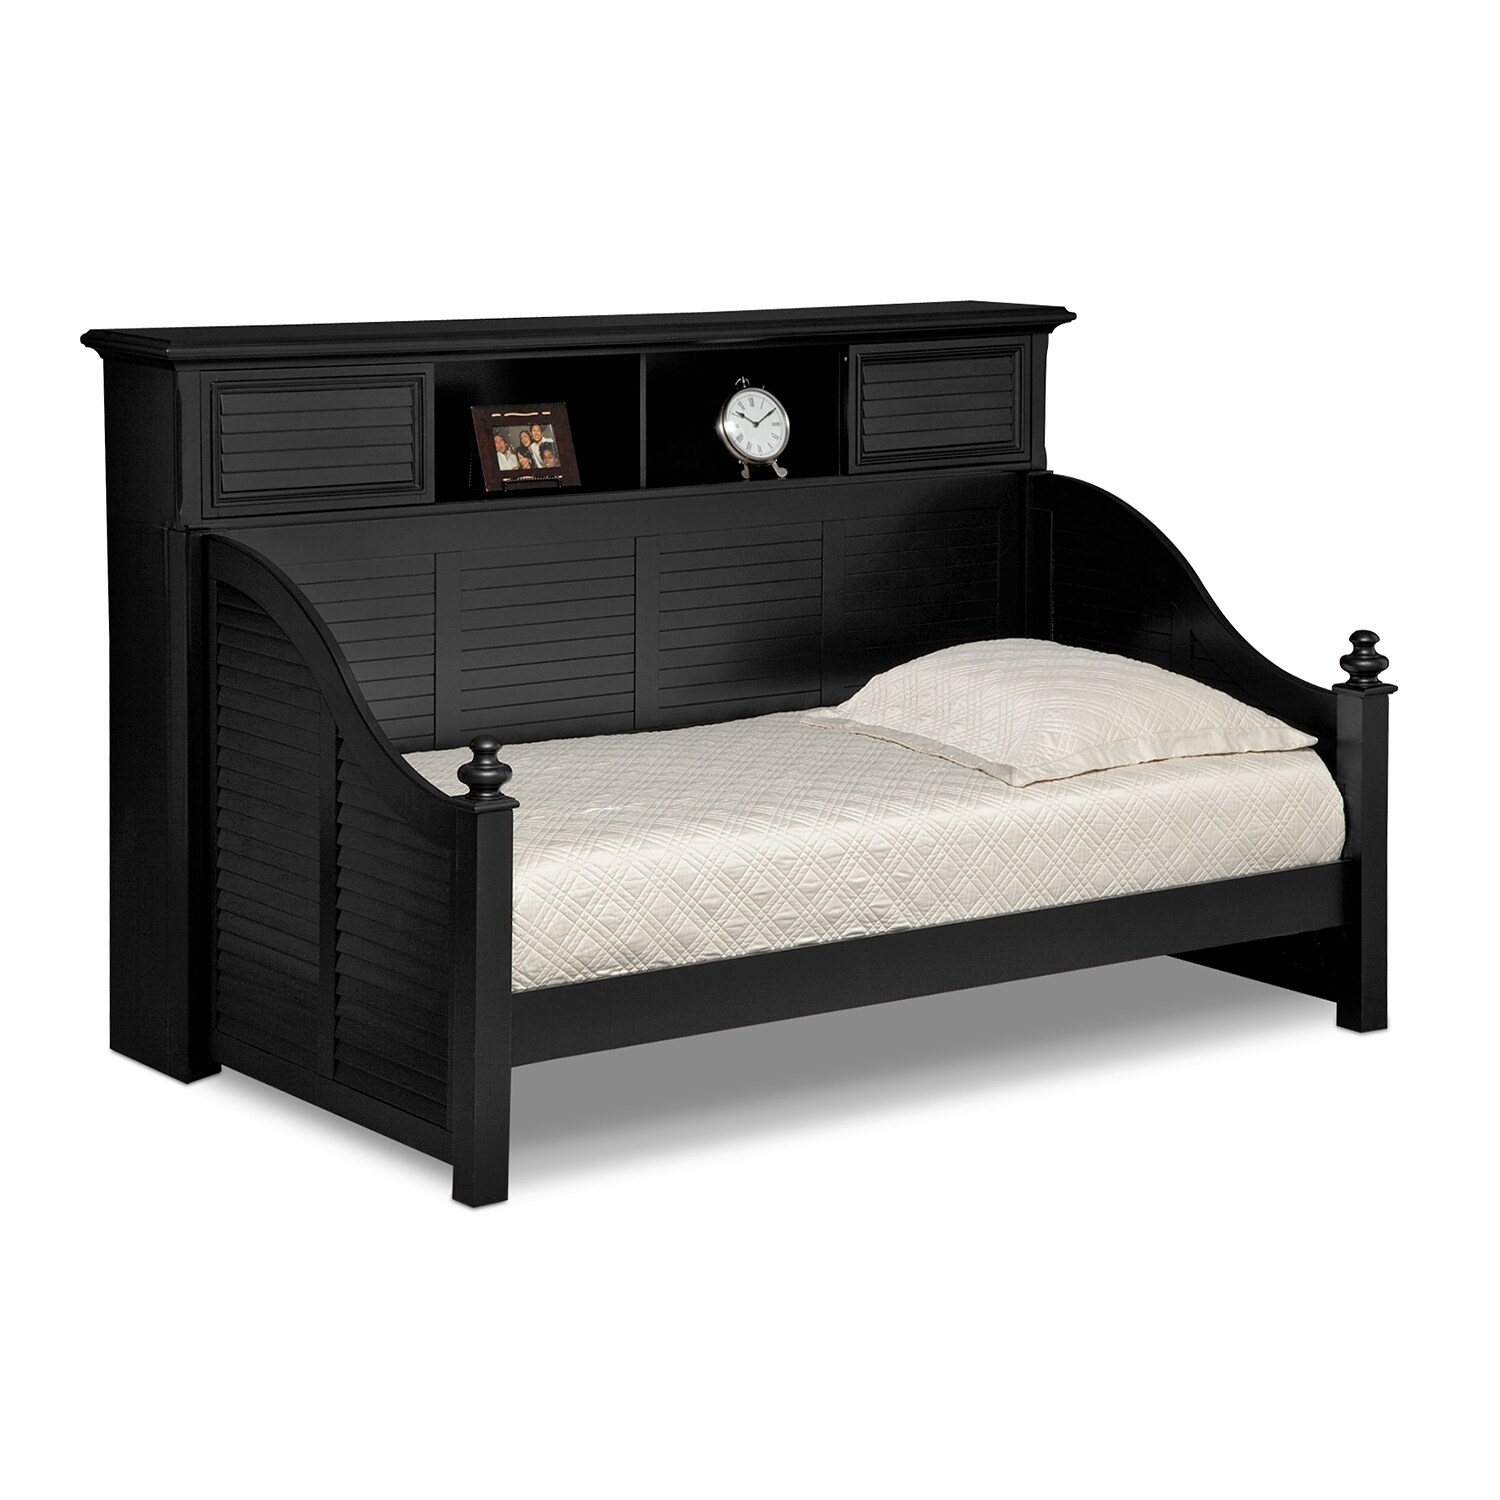 Bookcase daybed seaside black american signature furniture Seaside collection furniture